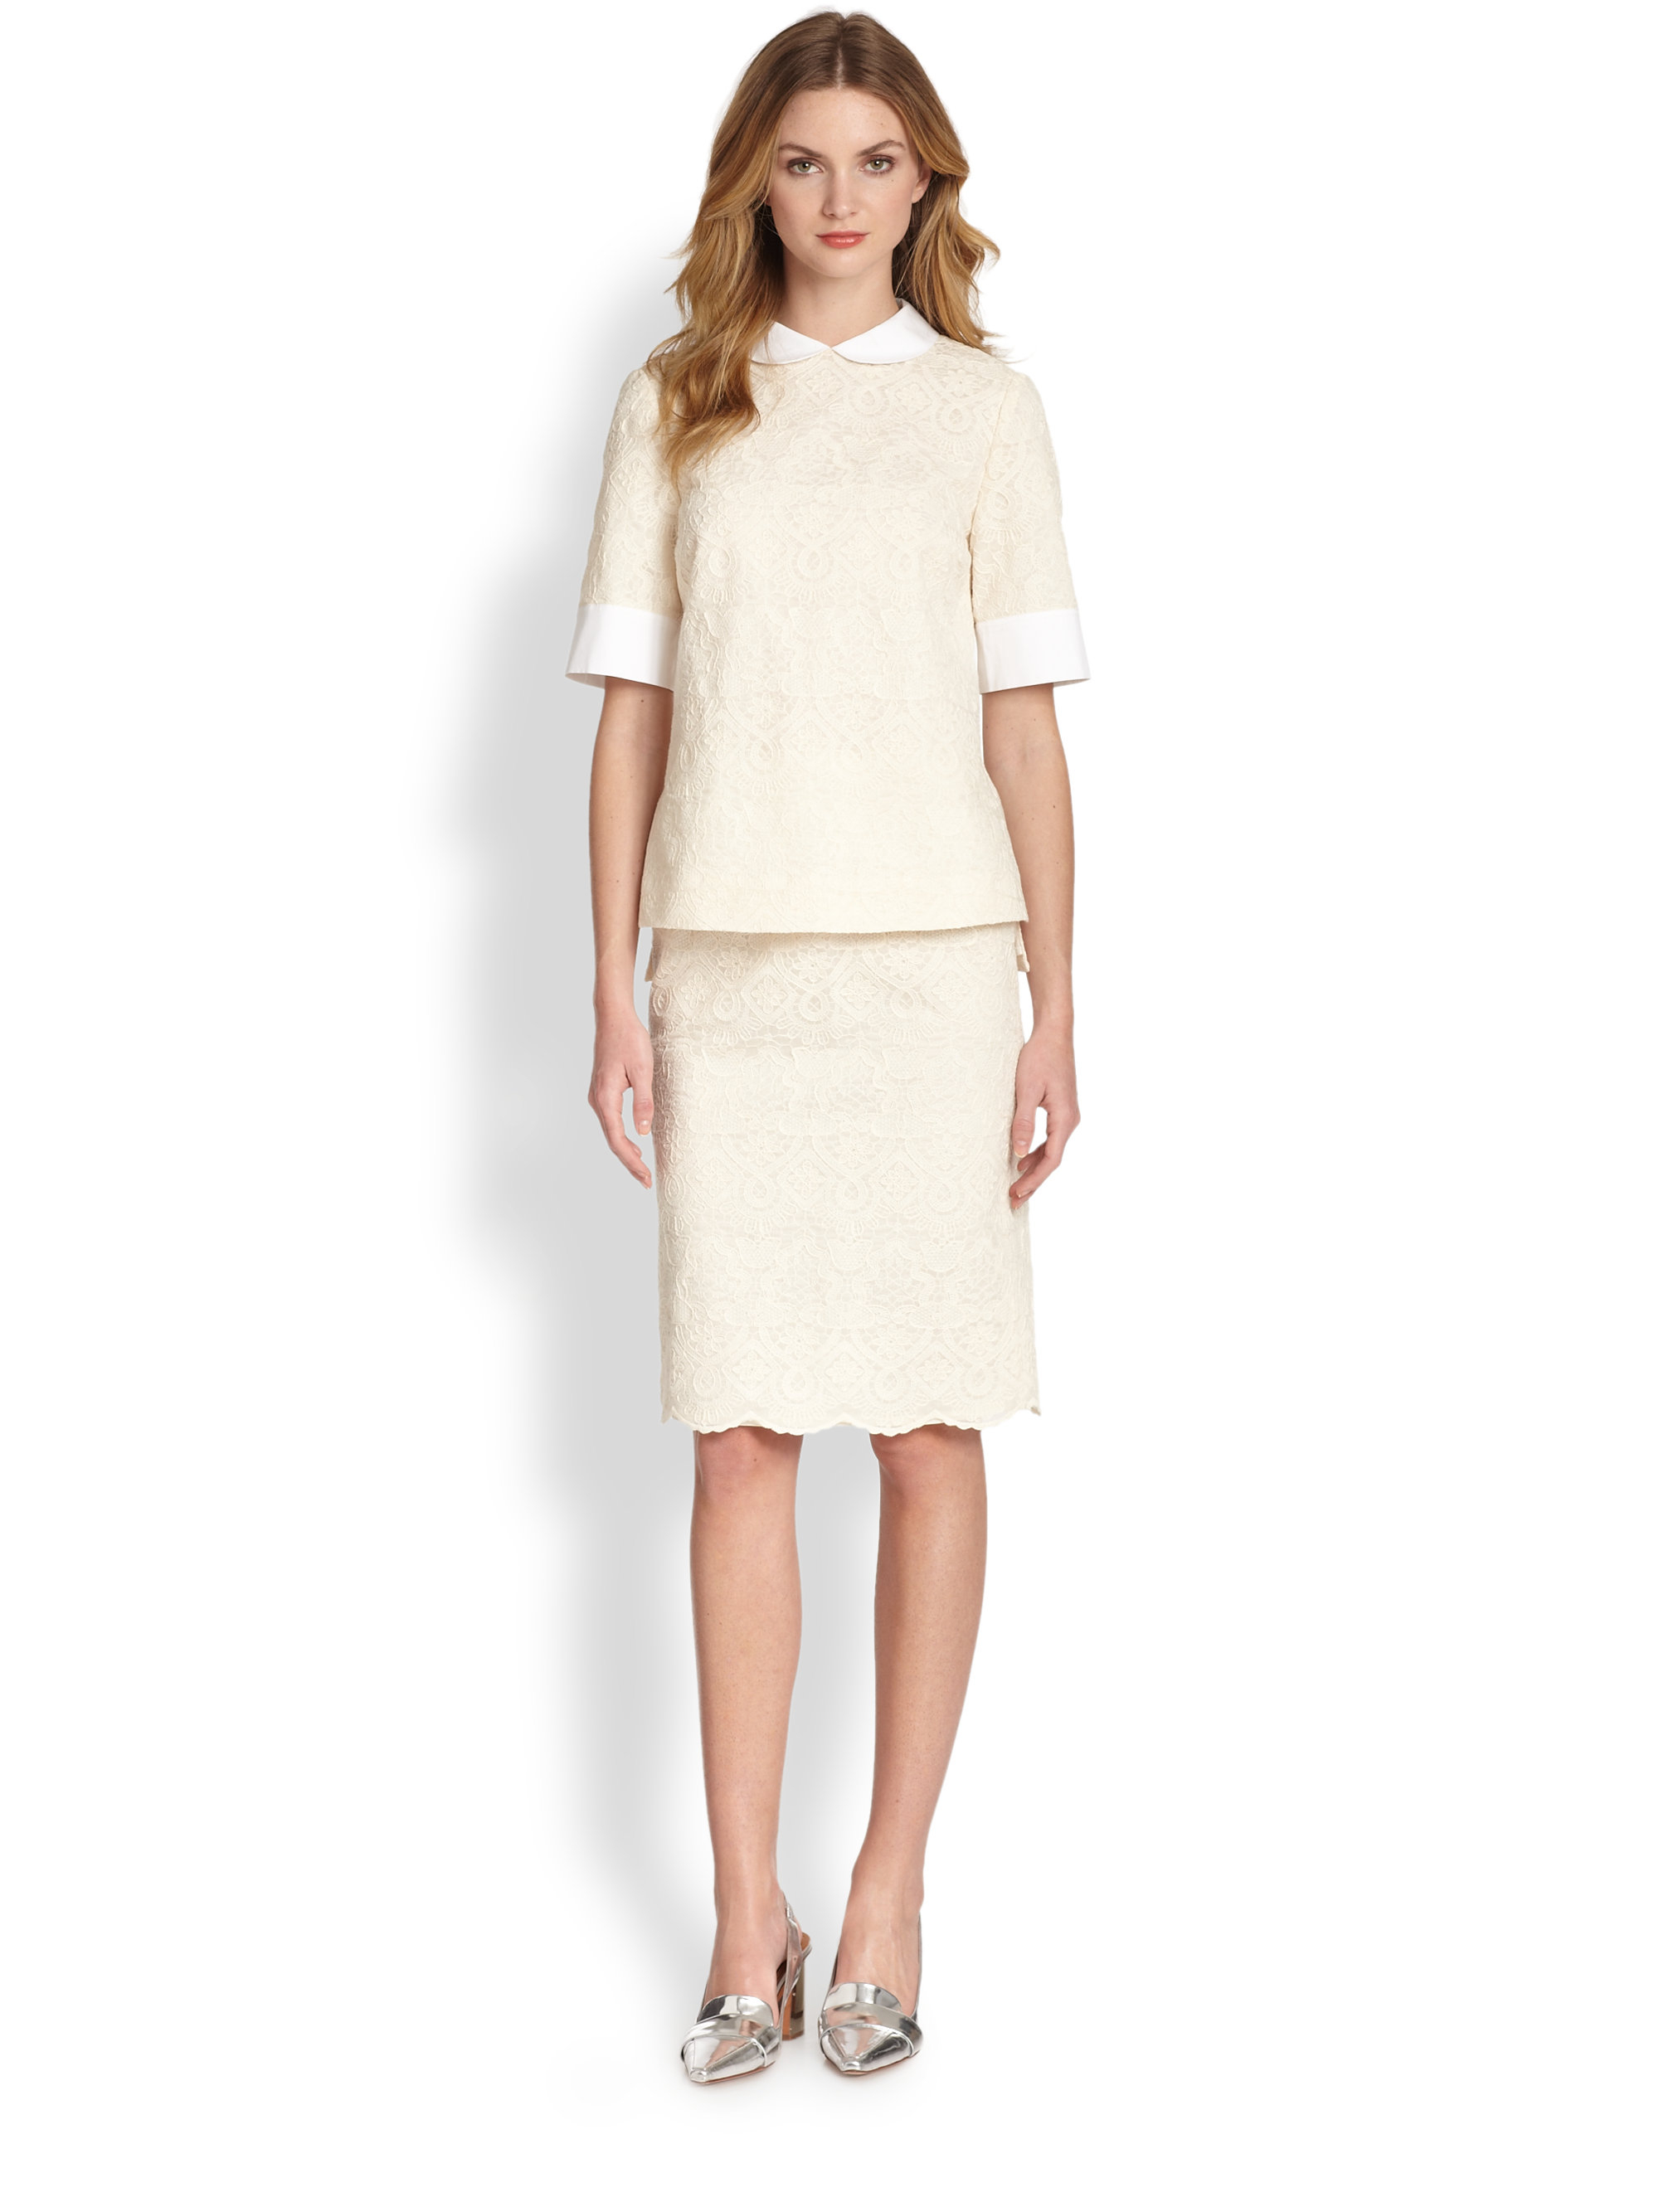 Floral Corded Lace Pencil Skirt. $ GIFT WITH PURCHASE. Burberry. Wilton Lace Pleated Midi Skirt. $1, NOW $ REDValentino. Point d'Esprit Long Skirt with Cutouts. $ NOW $ Next. Related Searches. Back Zip Sequin Skirt. Banded Pencil Skirt. Blue Spandex Pencil Skirt.